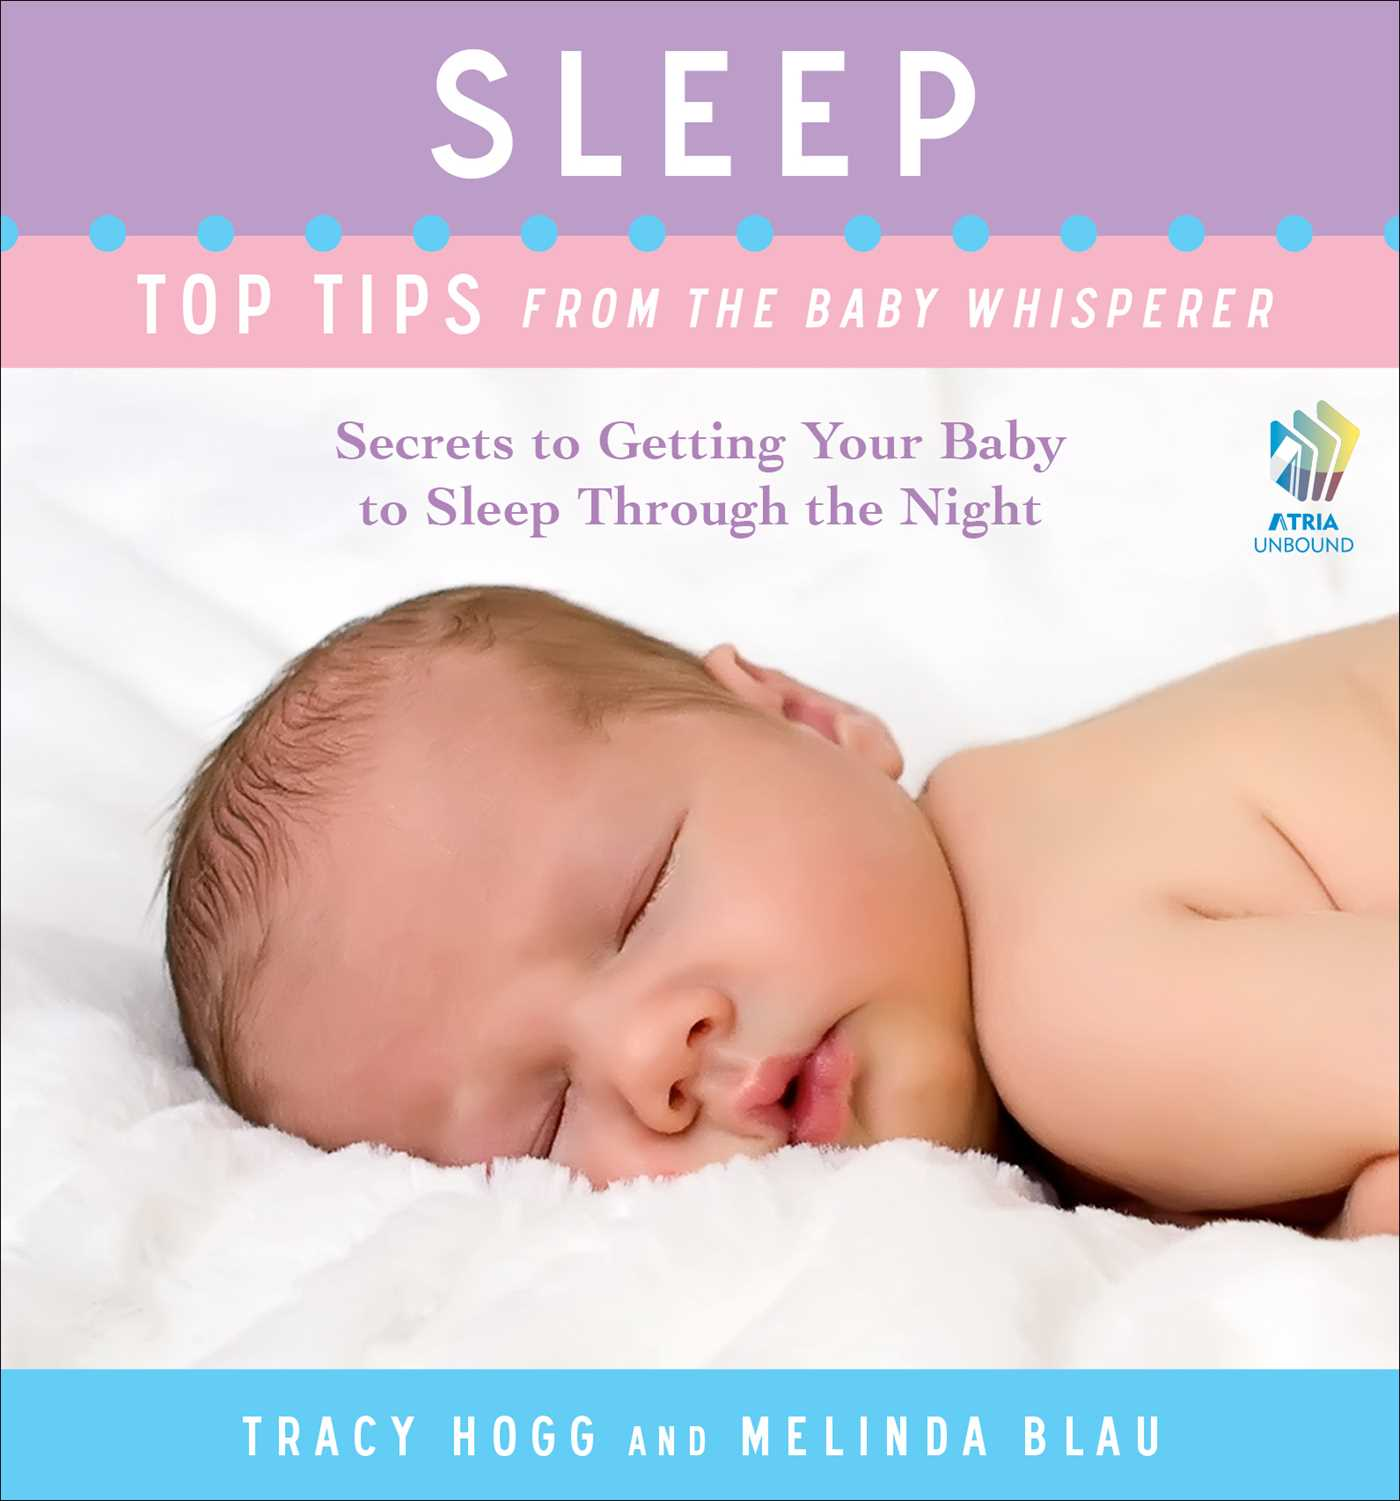 Sleep top tips from the baby whisperer 9781451650365 hr